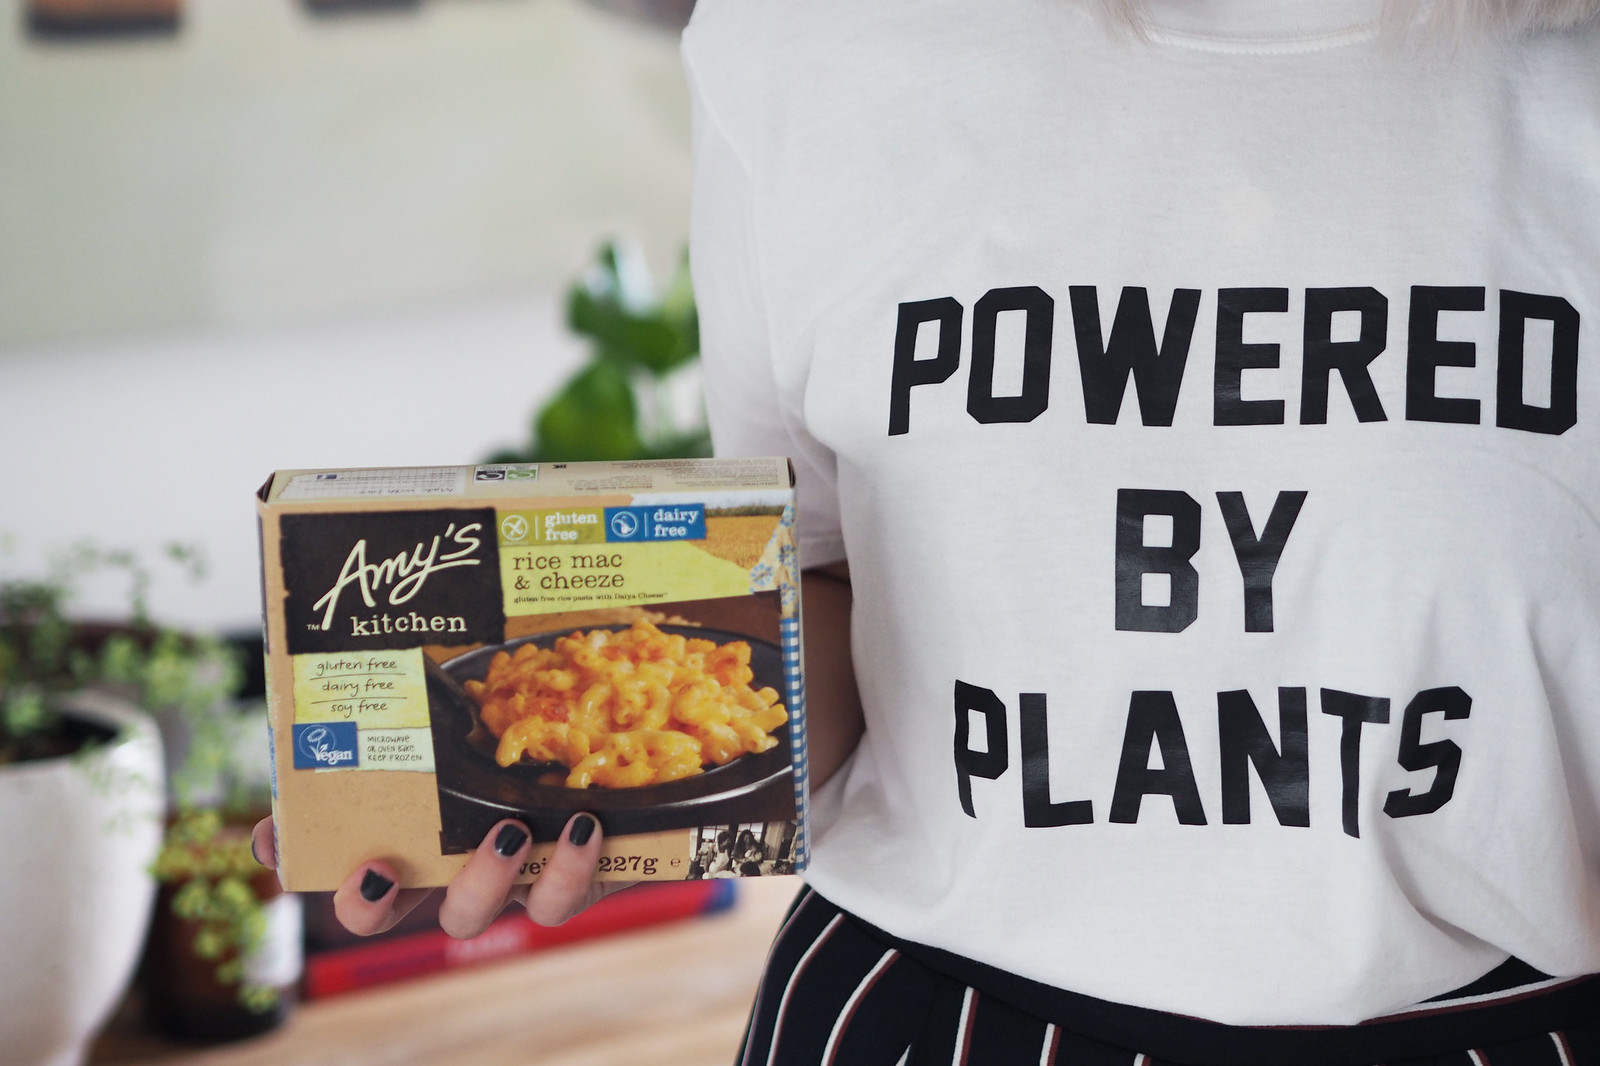 amys kitchen vegan mac n cheese